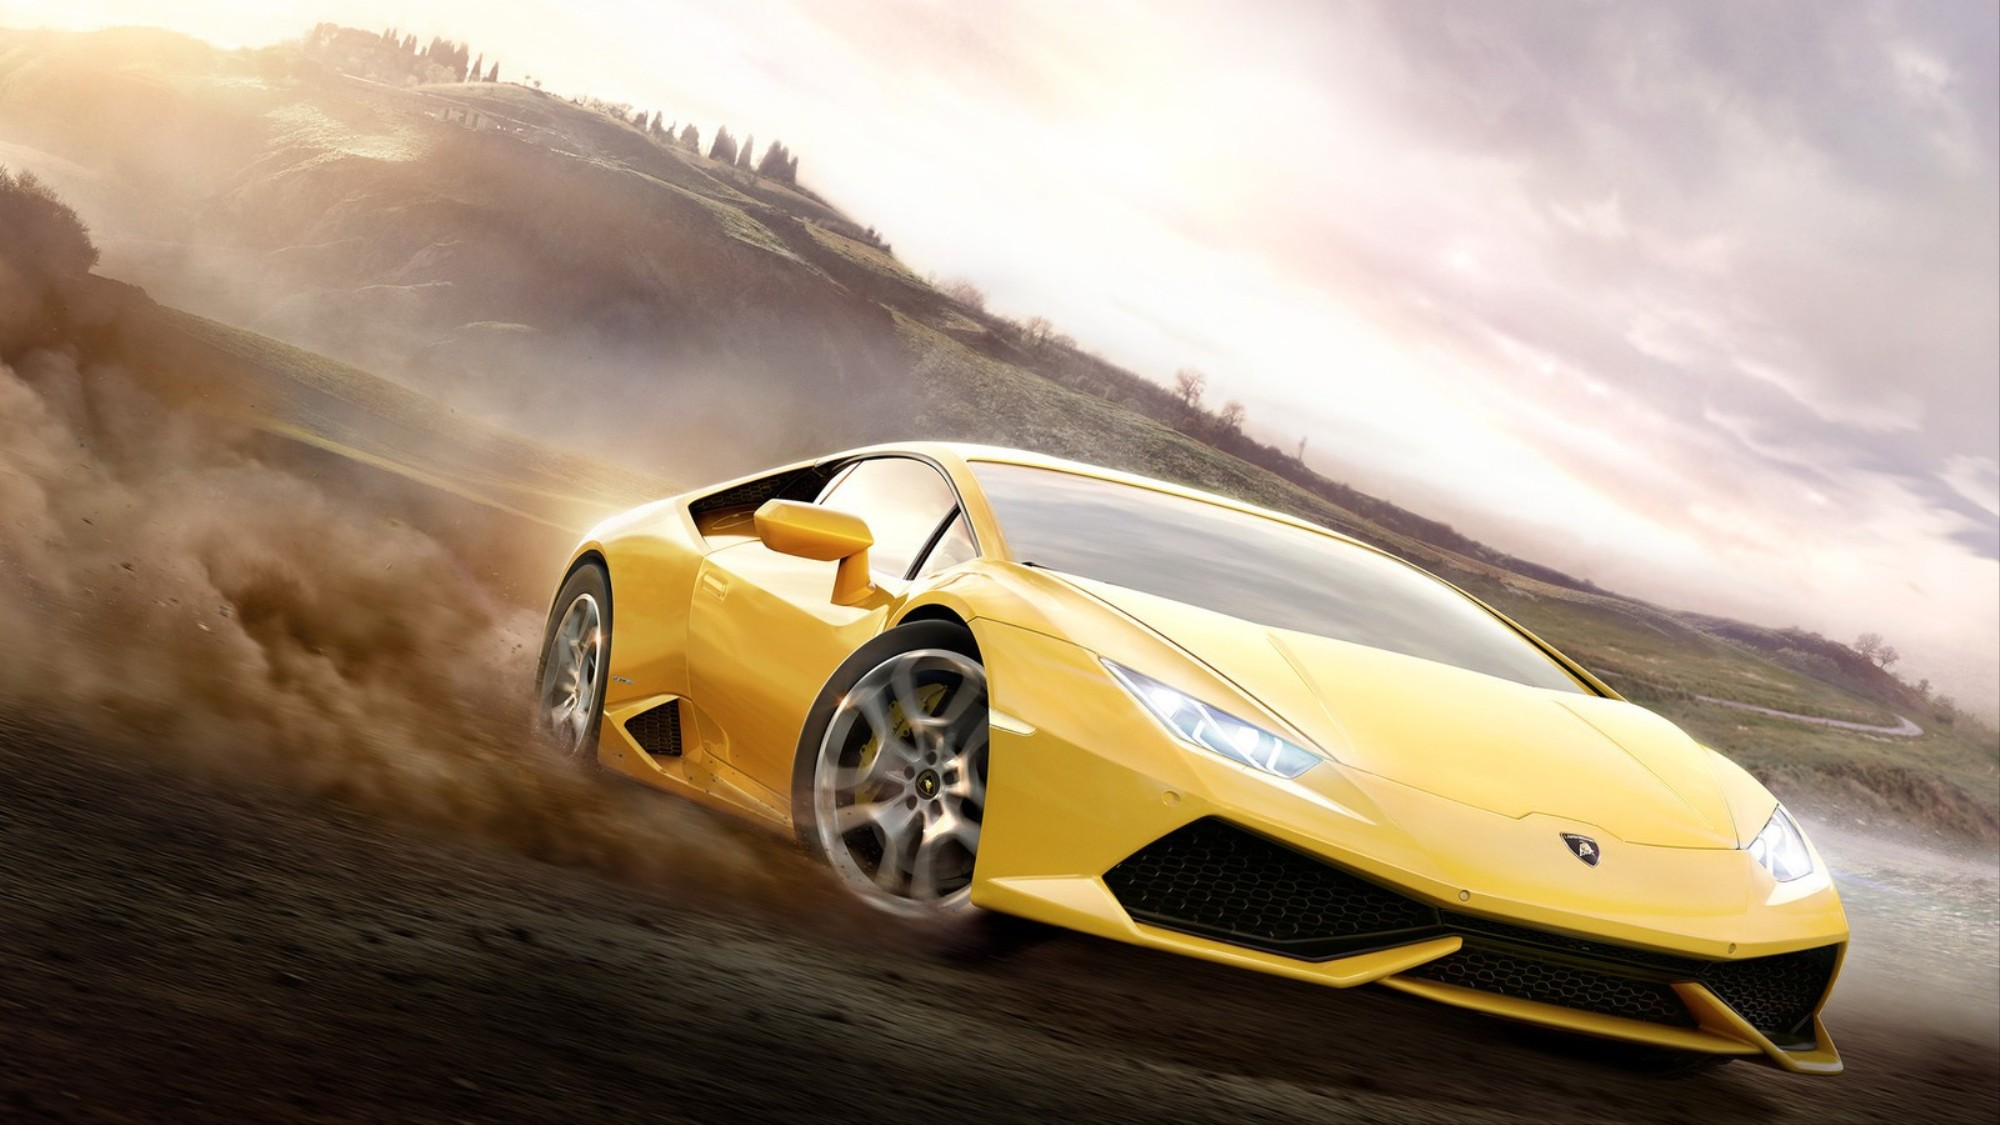 Only Piracy Can Save 'Forza Horizon 2' Now - VICE